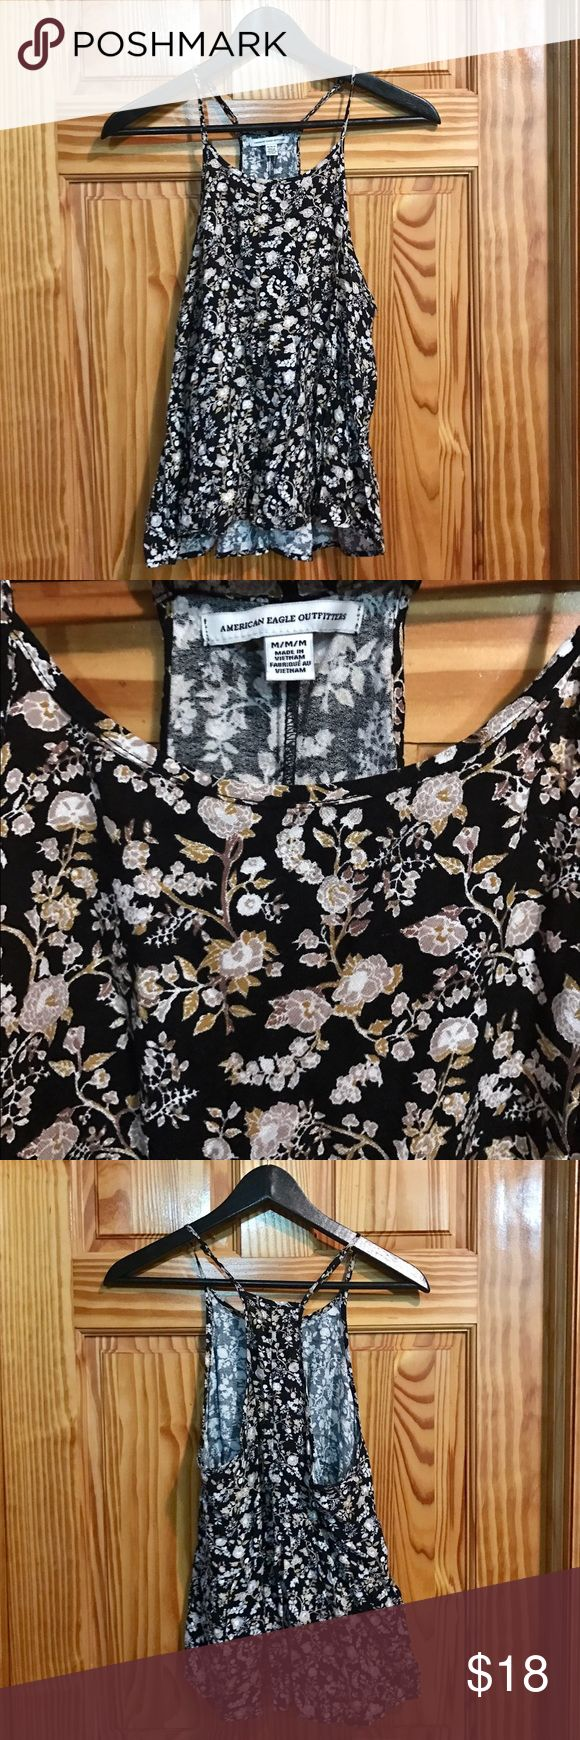 American Eagle Outfitters floral strappy top American Eagle Outfitters floral spaghetti strap flowy tank top, size medium, worn only once! American Eagle Outfitters Tops Tank Tops